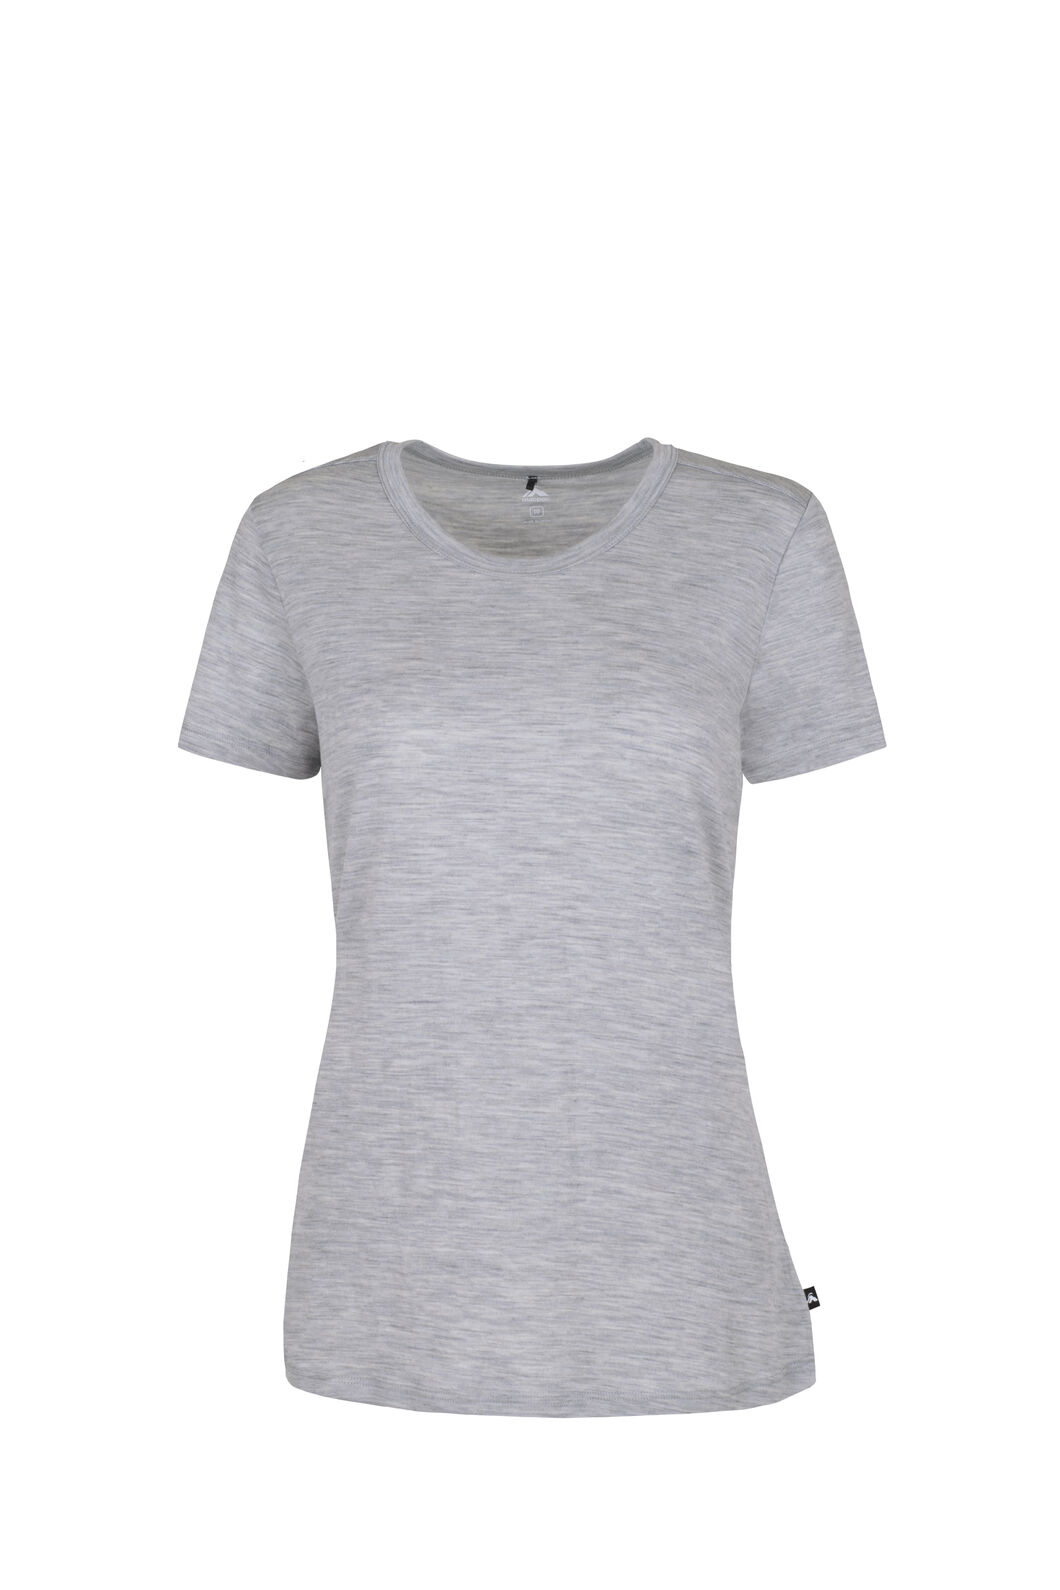 Macpac Lyellette 180 Merino Short Sleeve Crew - Women's, Grey Marle, hi-res